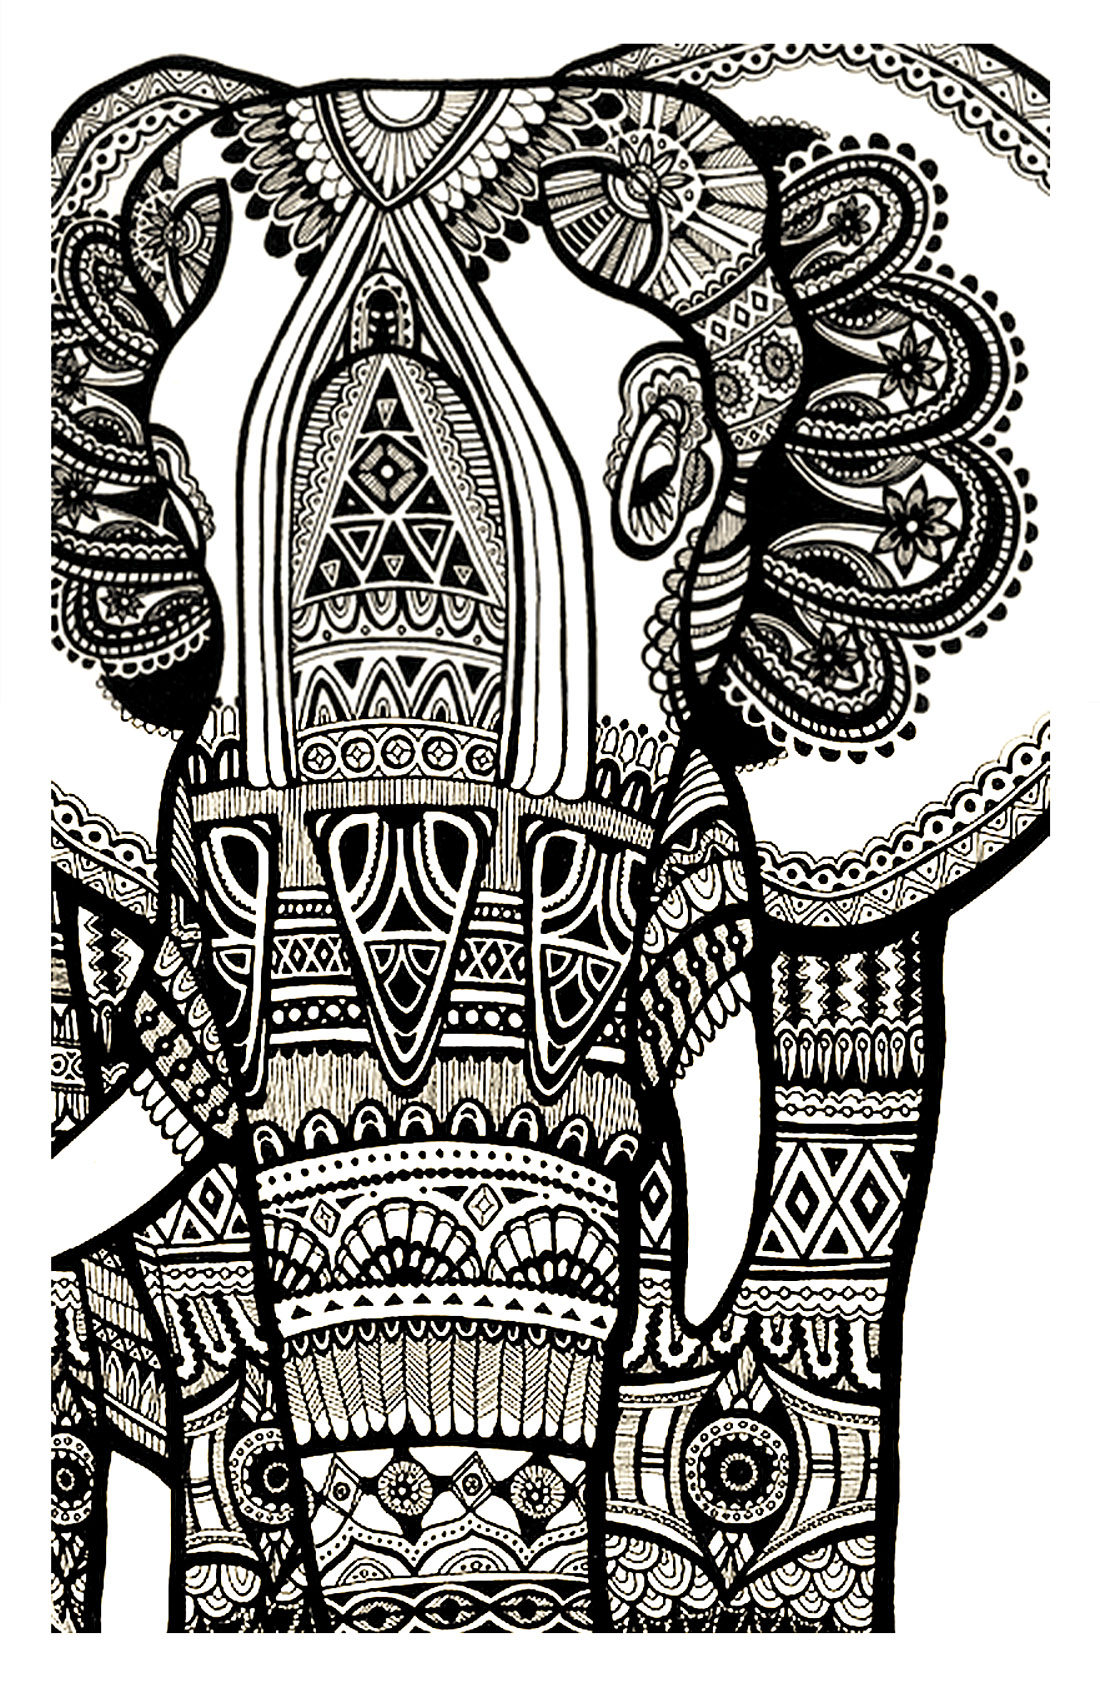 Coloring Page Elephant Te Print For Free A Magnificien Drawn With Zentangle Patterns